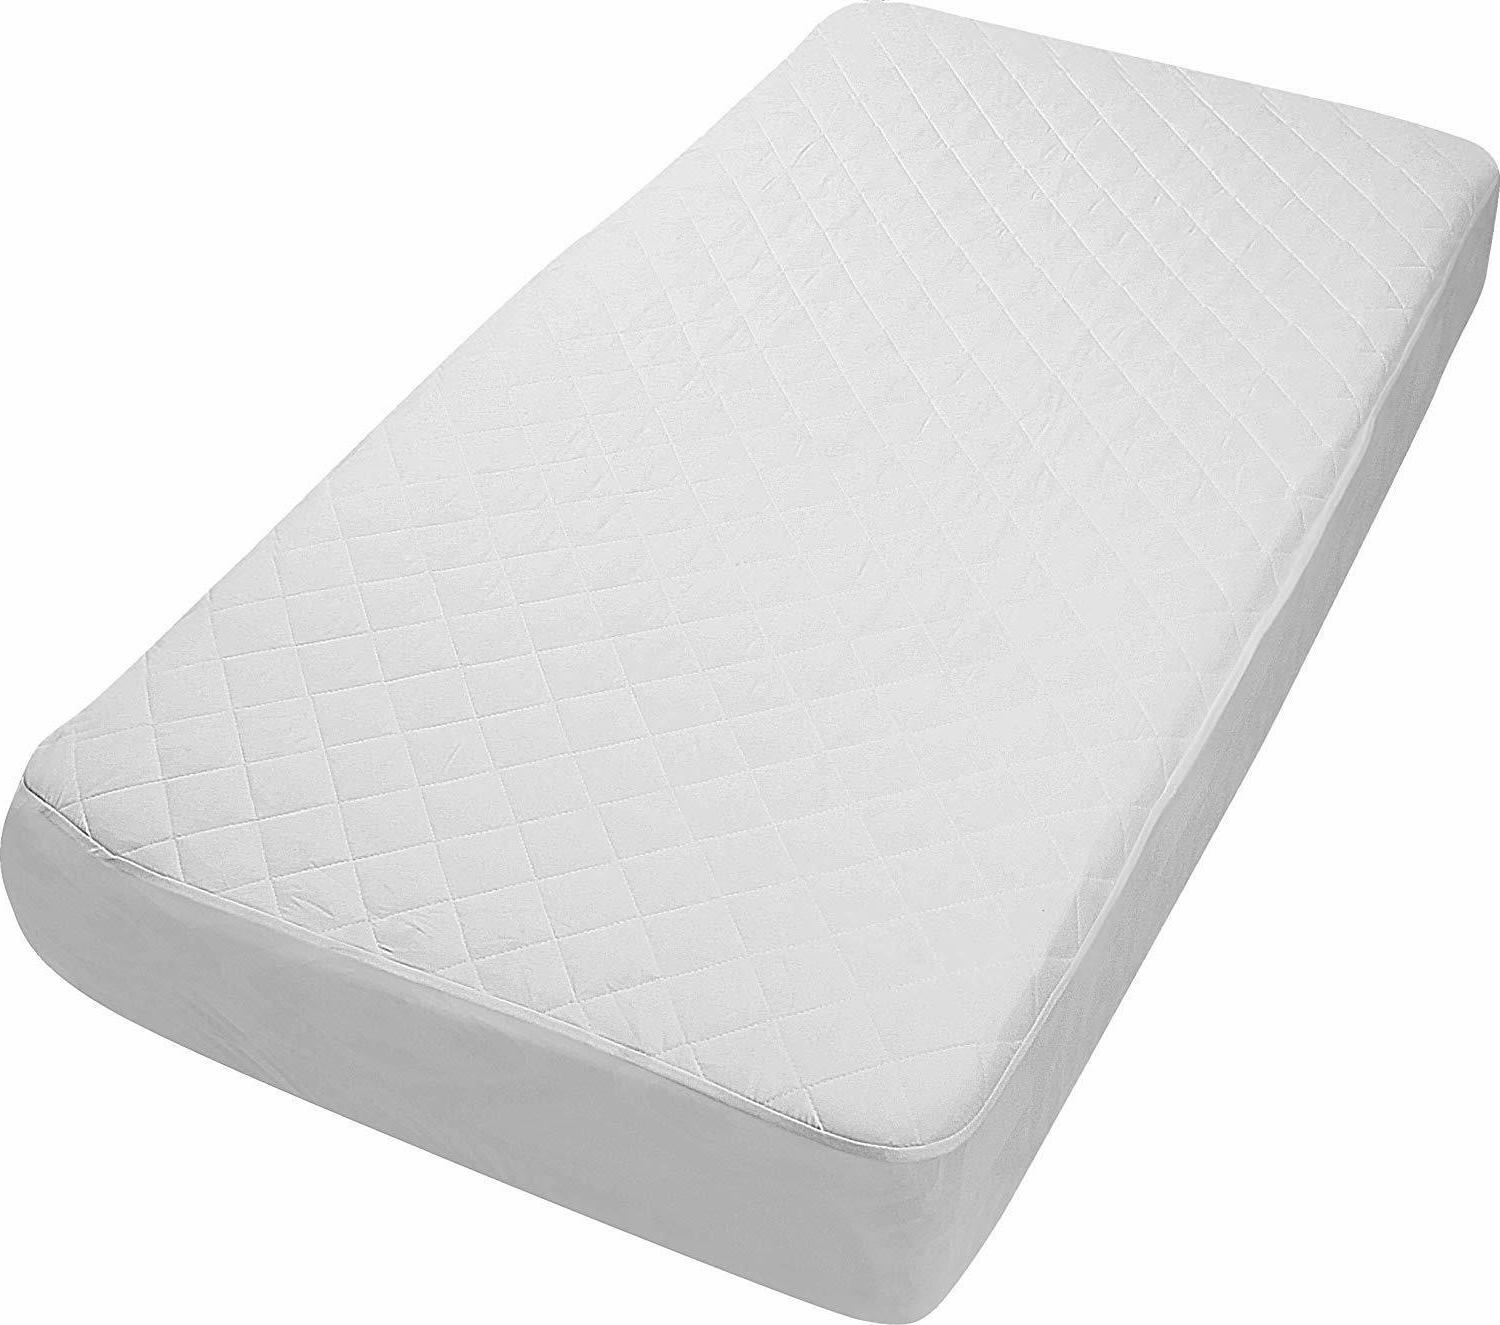 Pack of Crib Pad Cover Toddler and Utopia Bedding